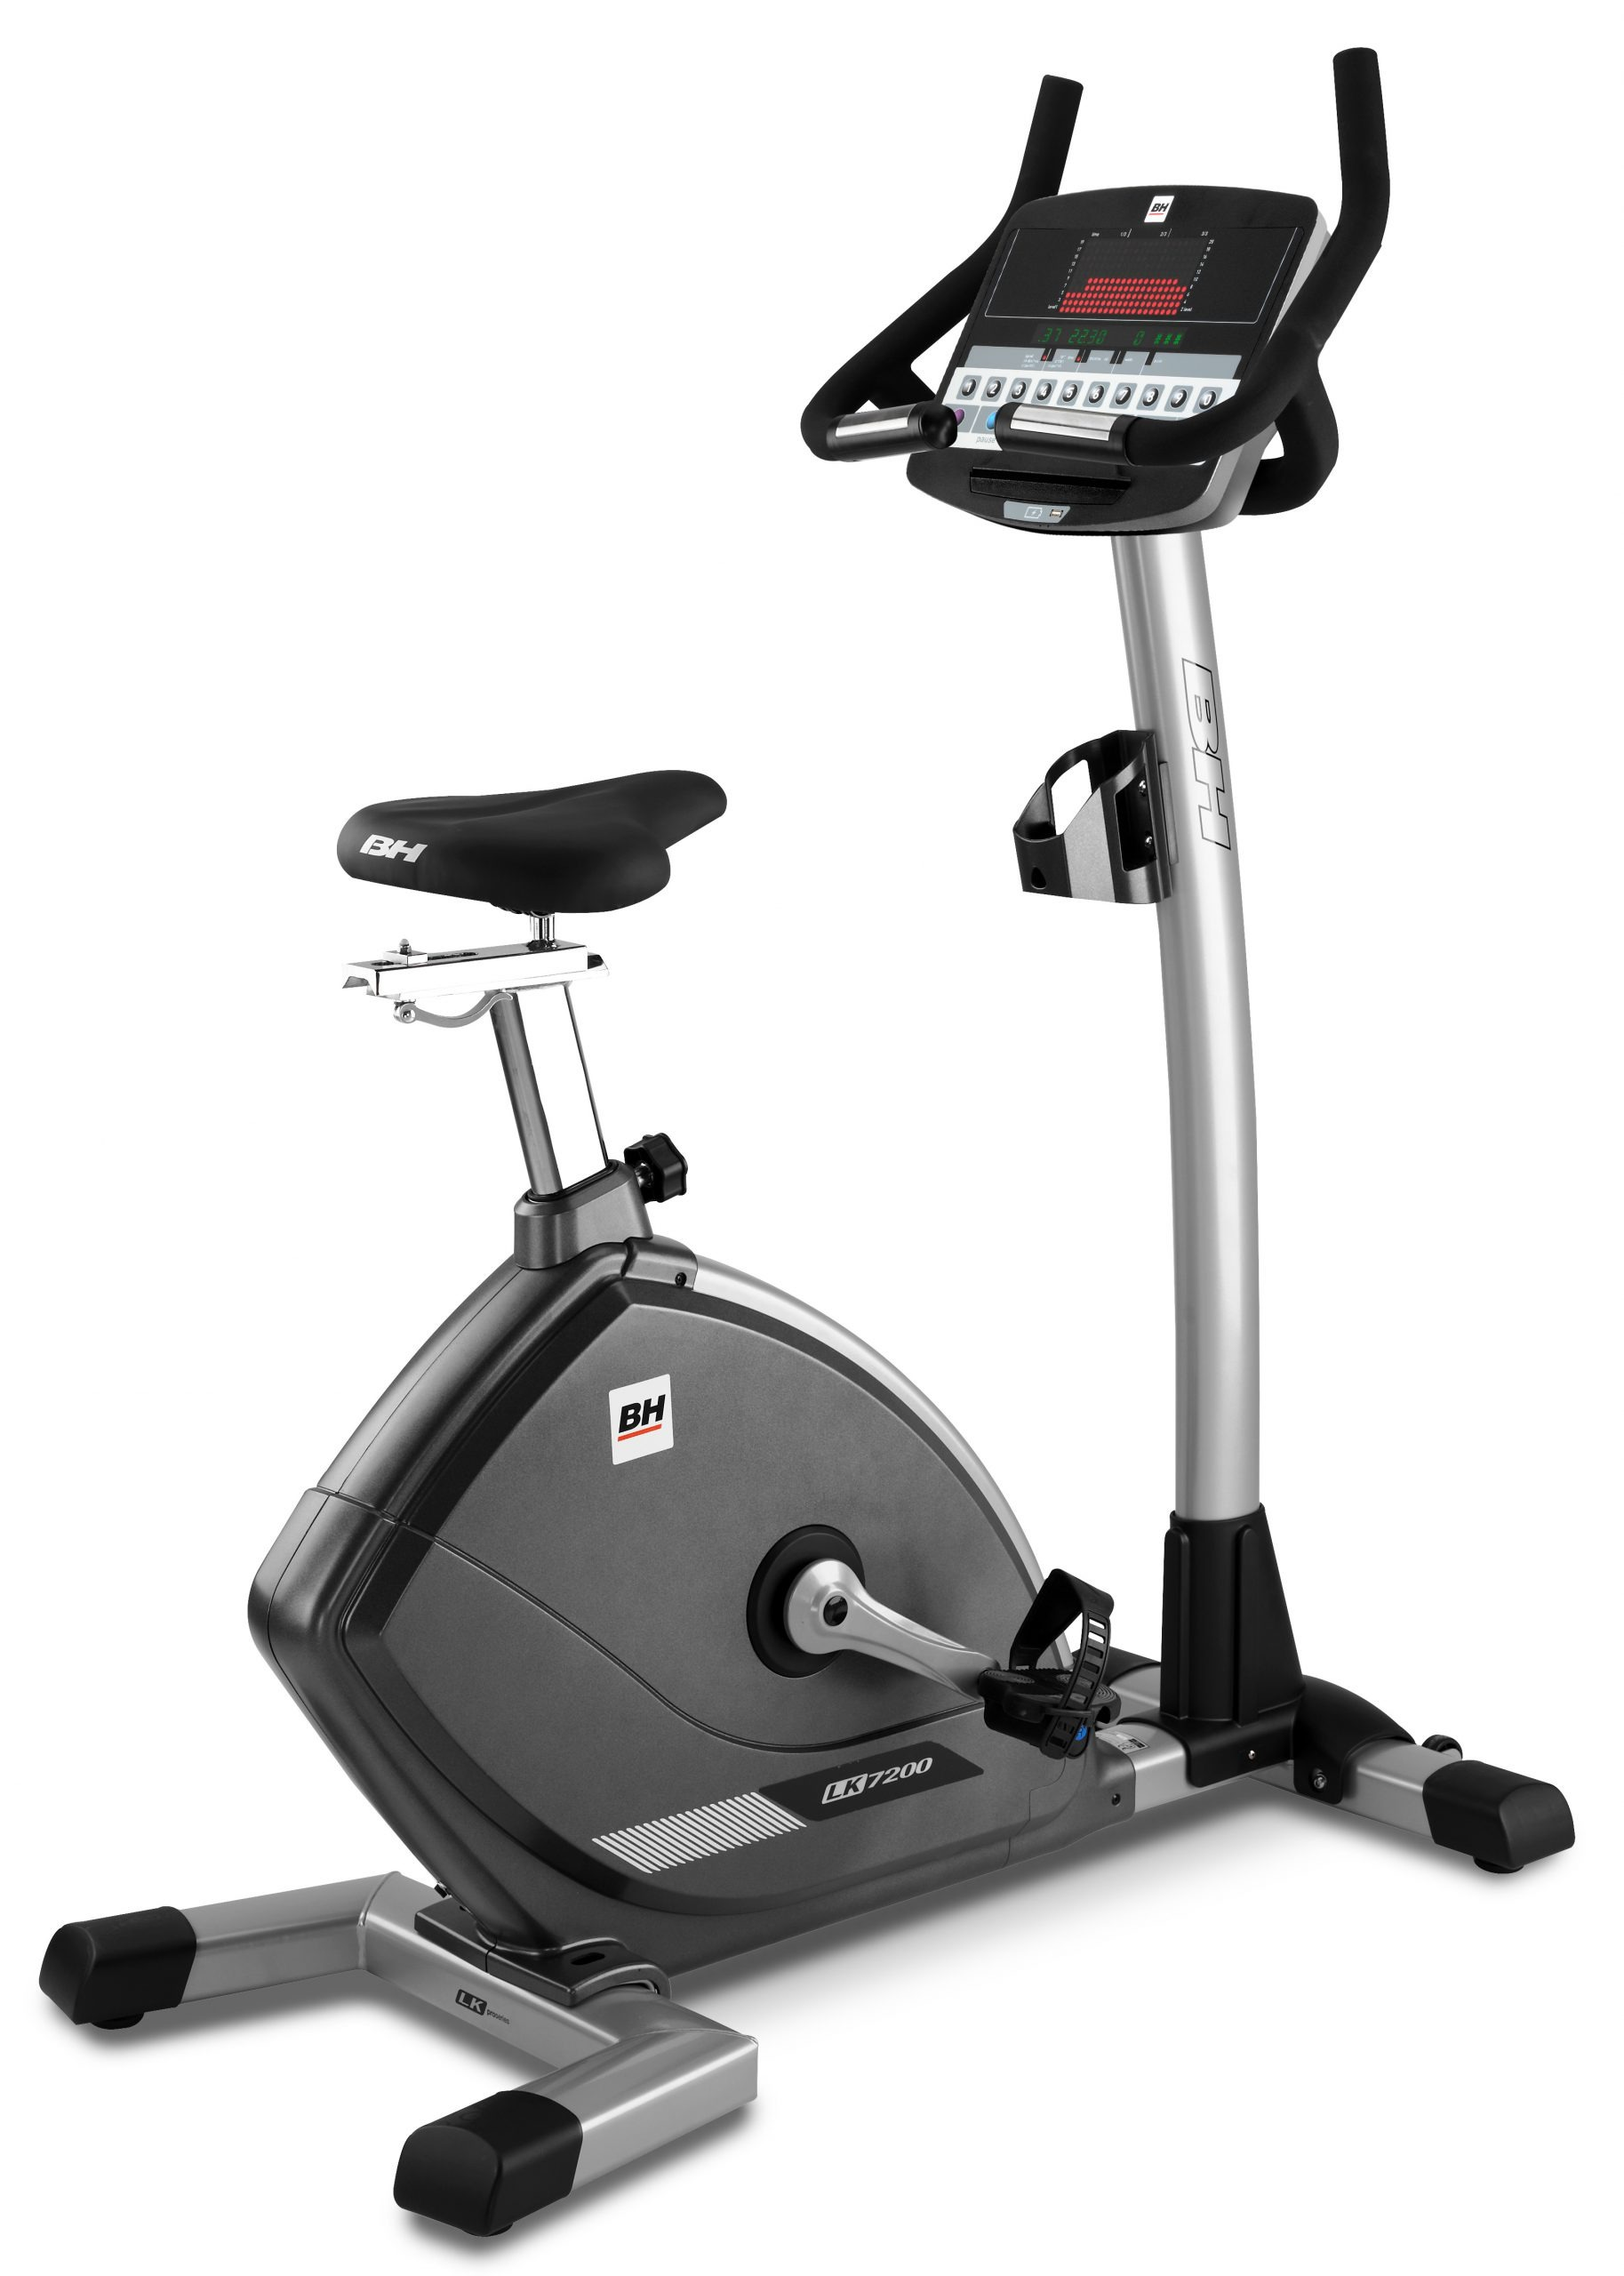 H720 Upright Bike